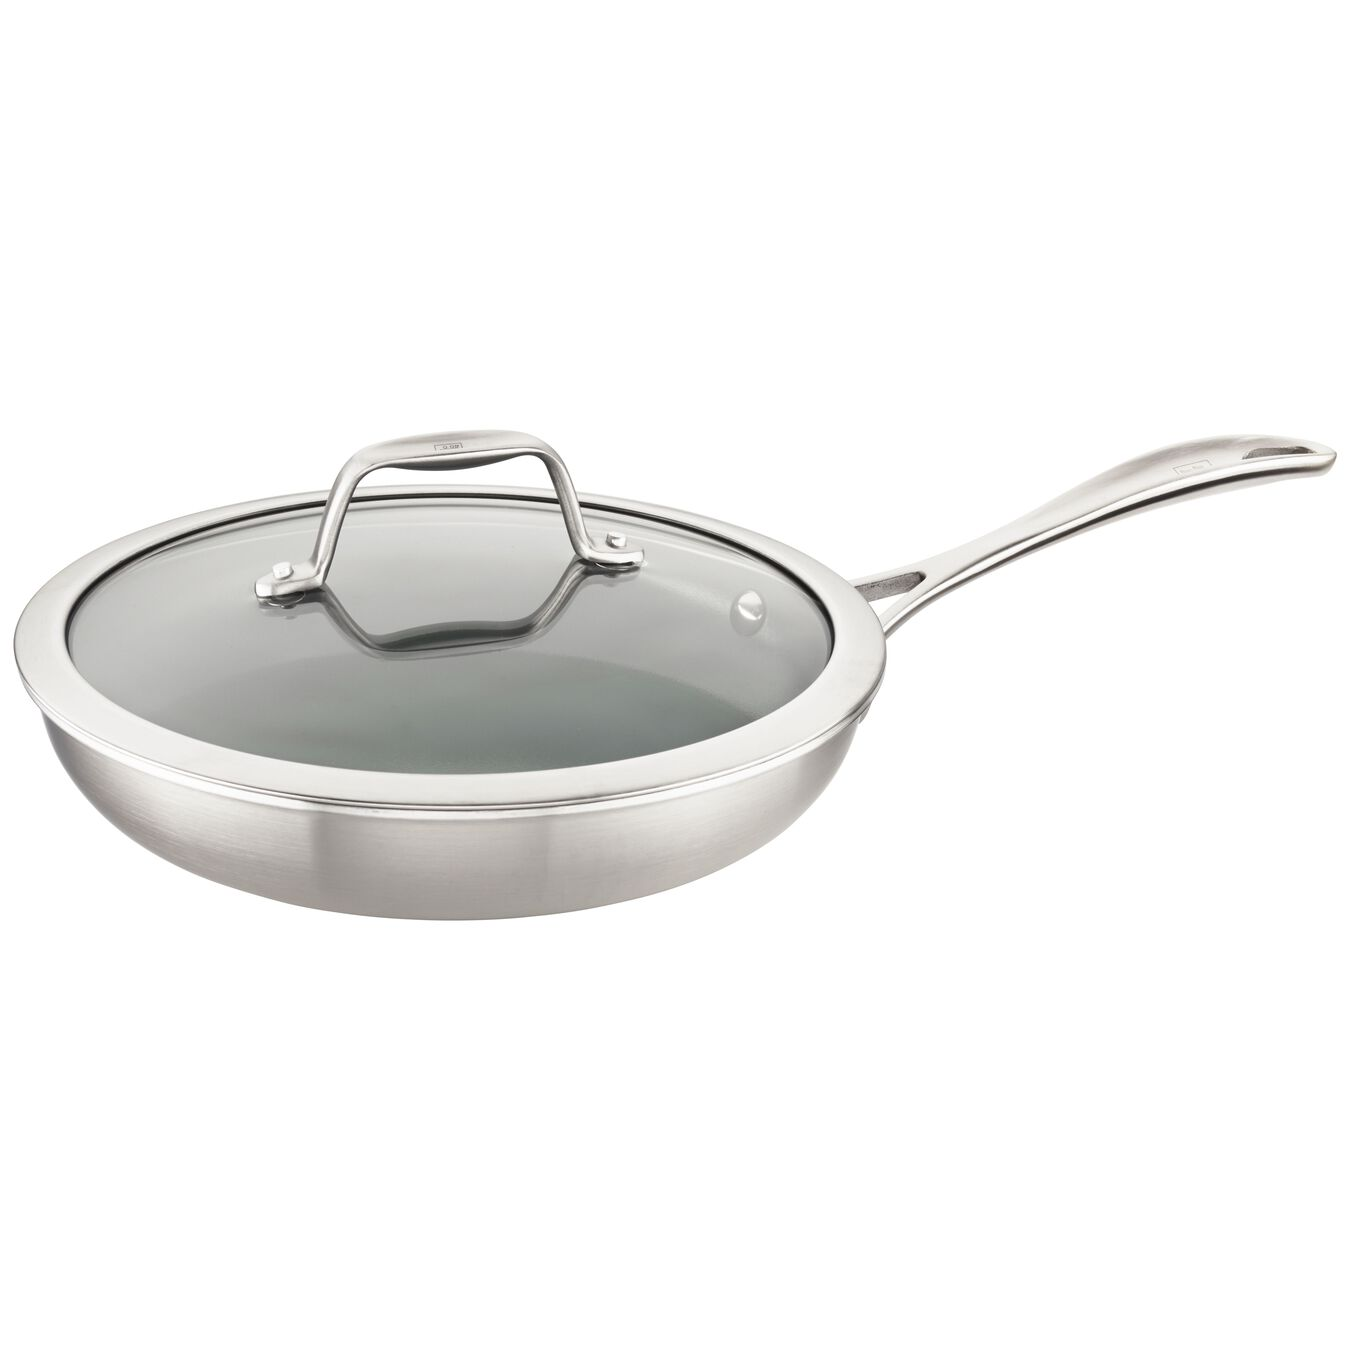 9.5-inch, 18/10 Stainless Steel, Non-stick, Frying pan,,large 1